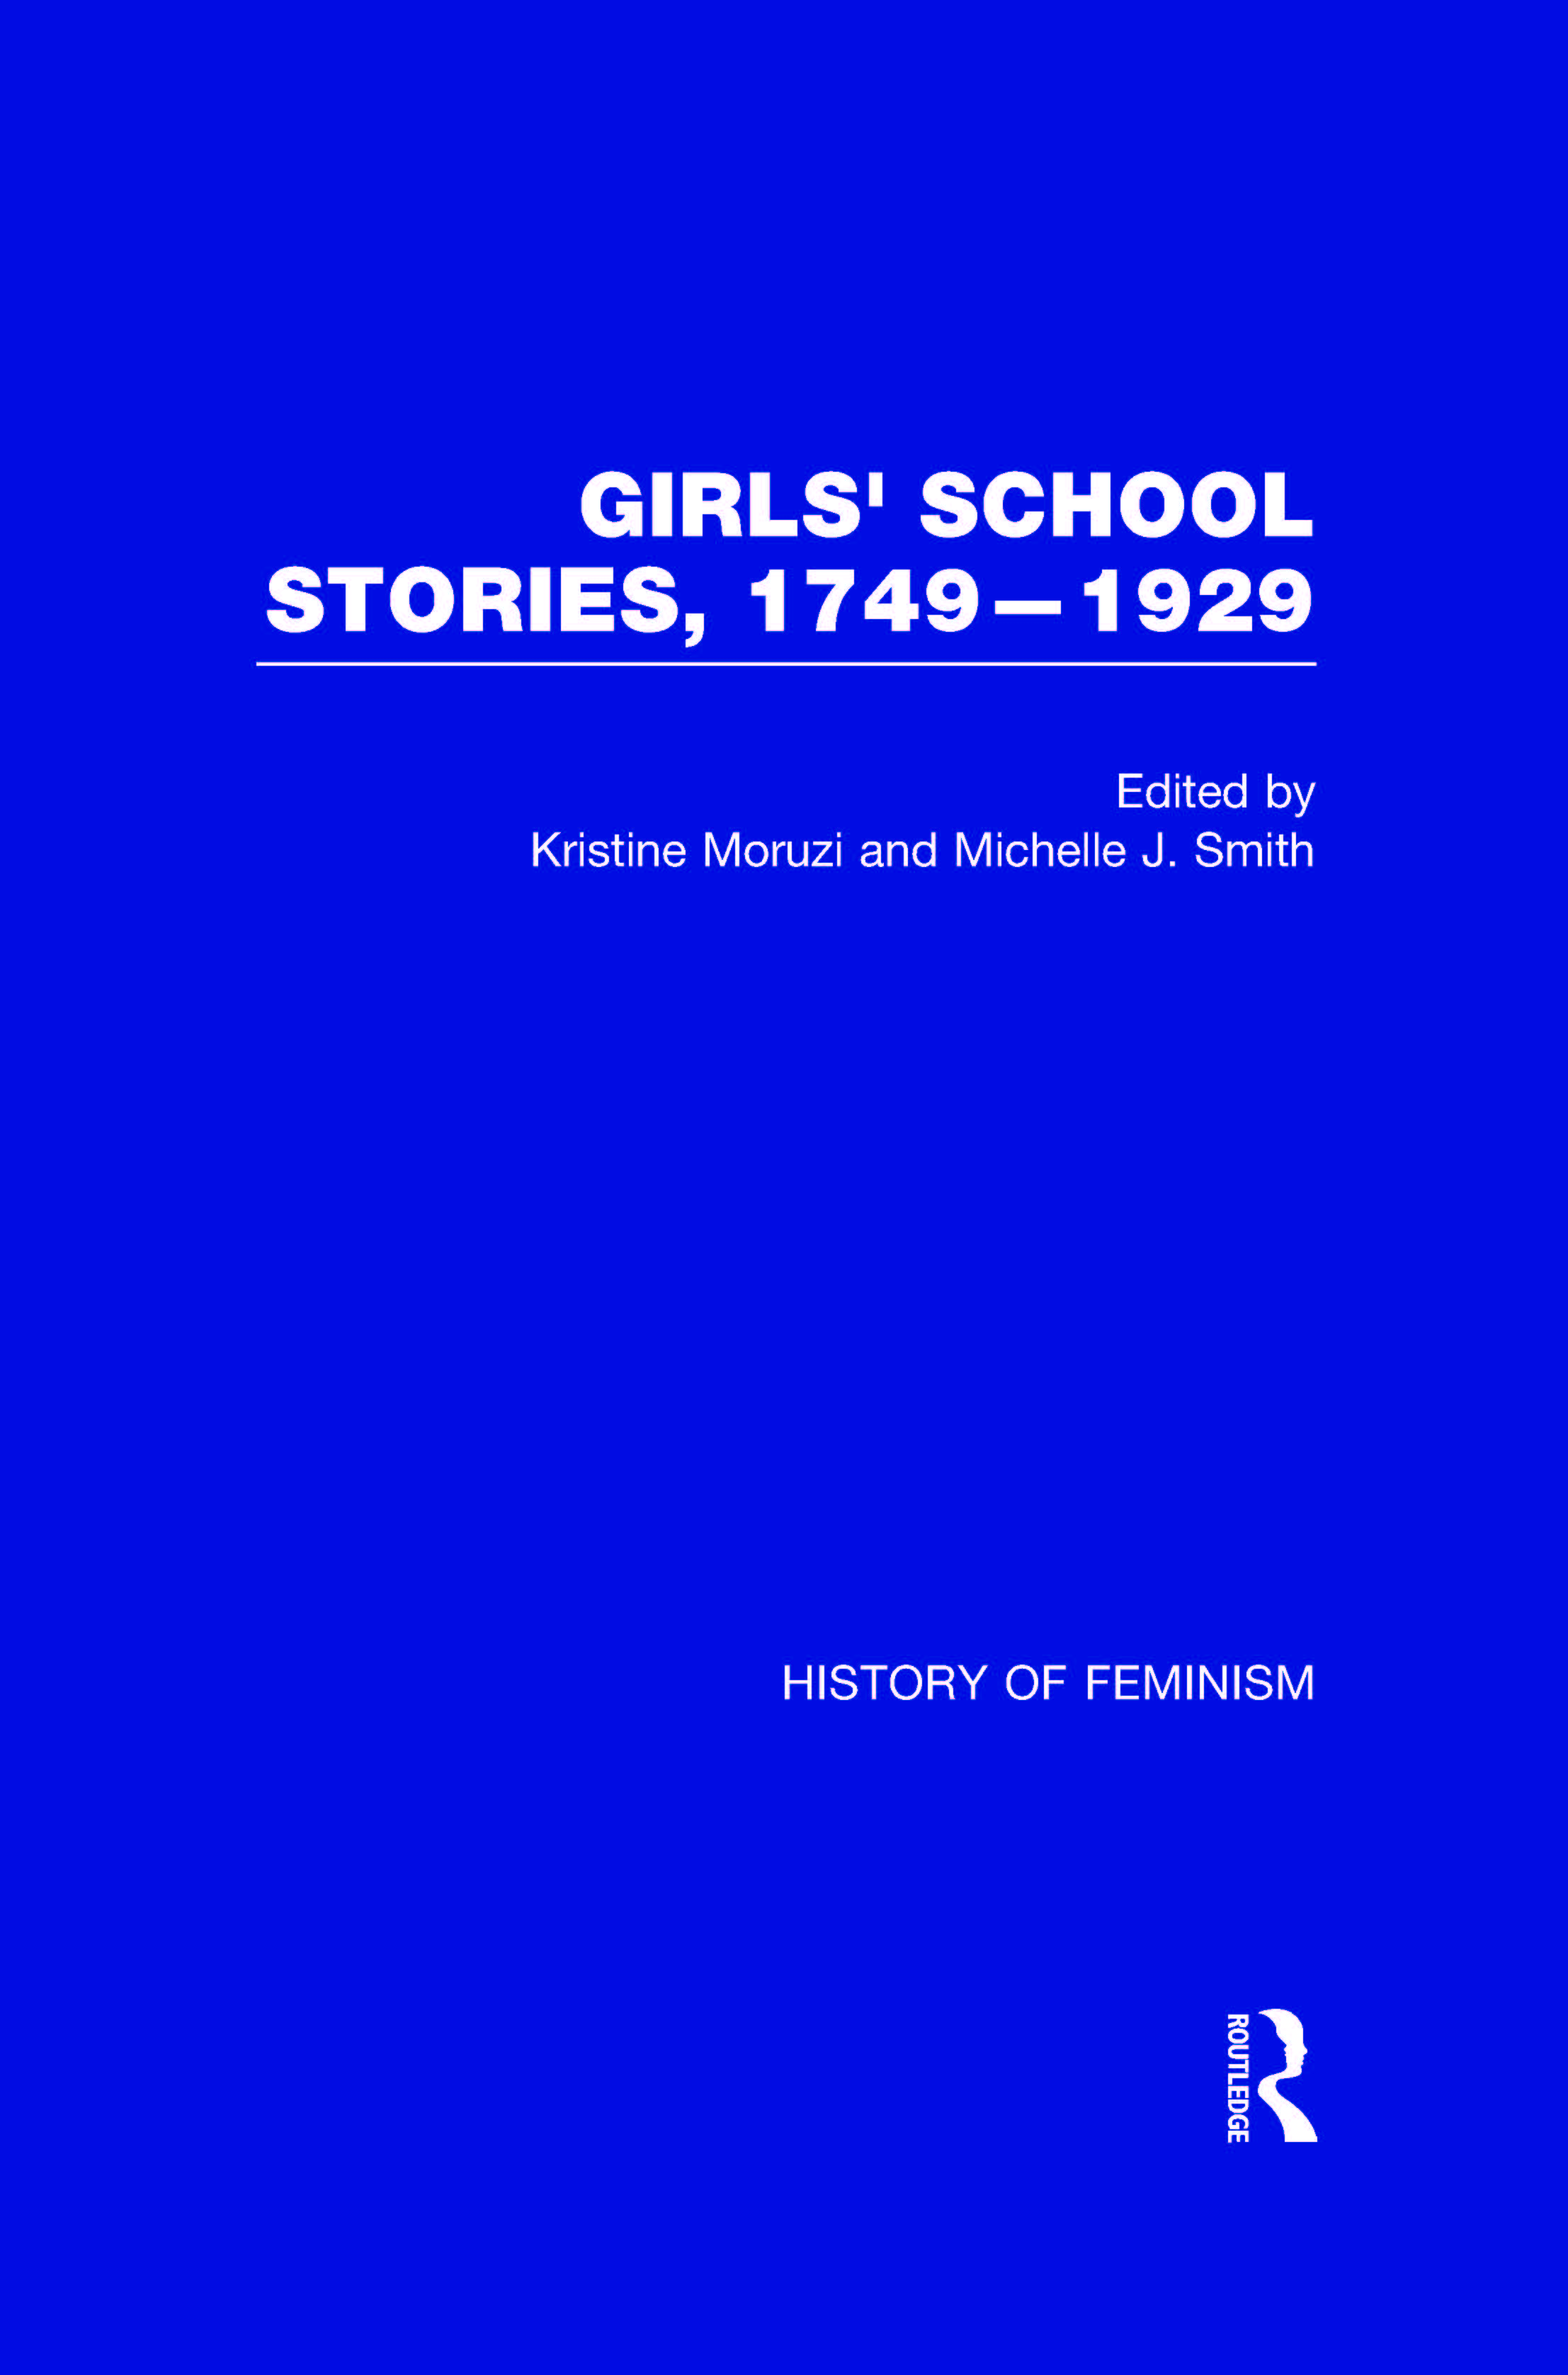 Cover of Girl's School Stories, 1749-1929